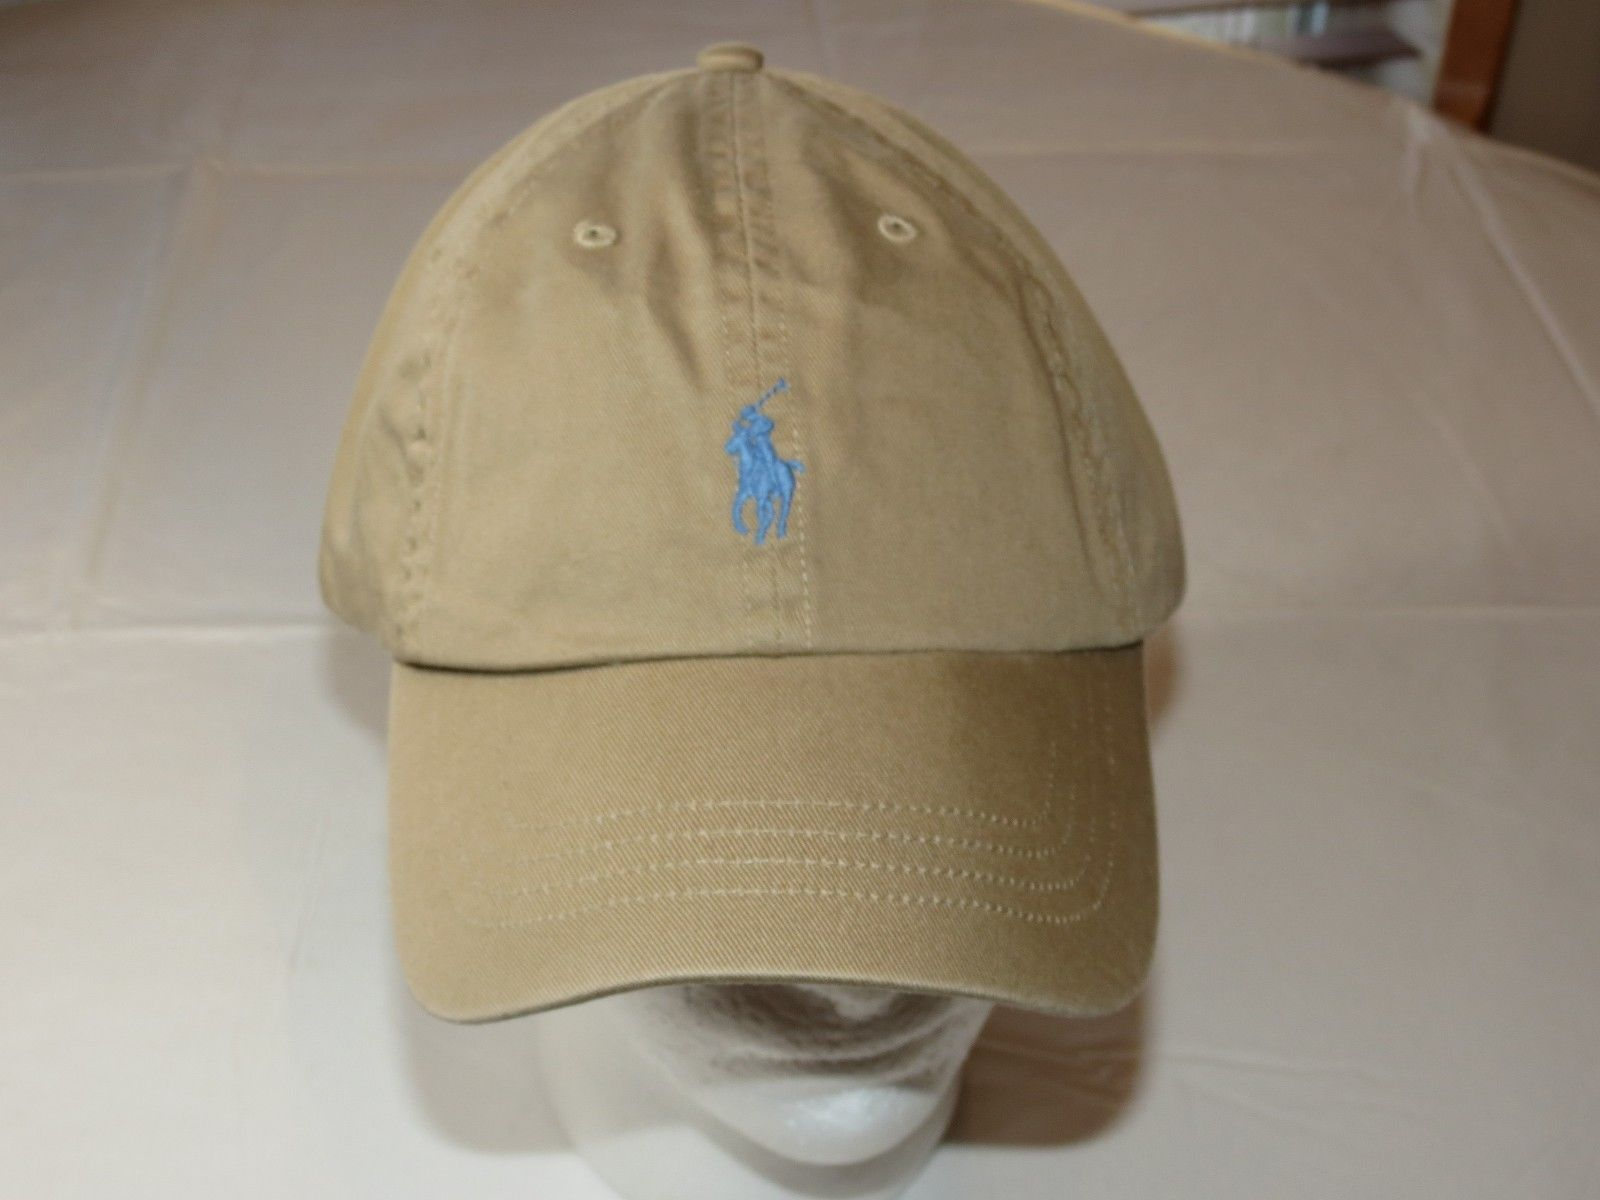 b226538018823 Mens Polo Ralph Lauren hat cap golf casual and 50 similar items. S l1600